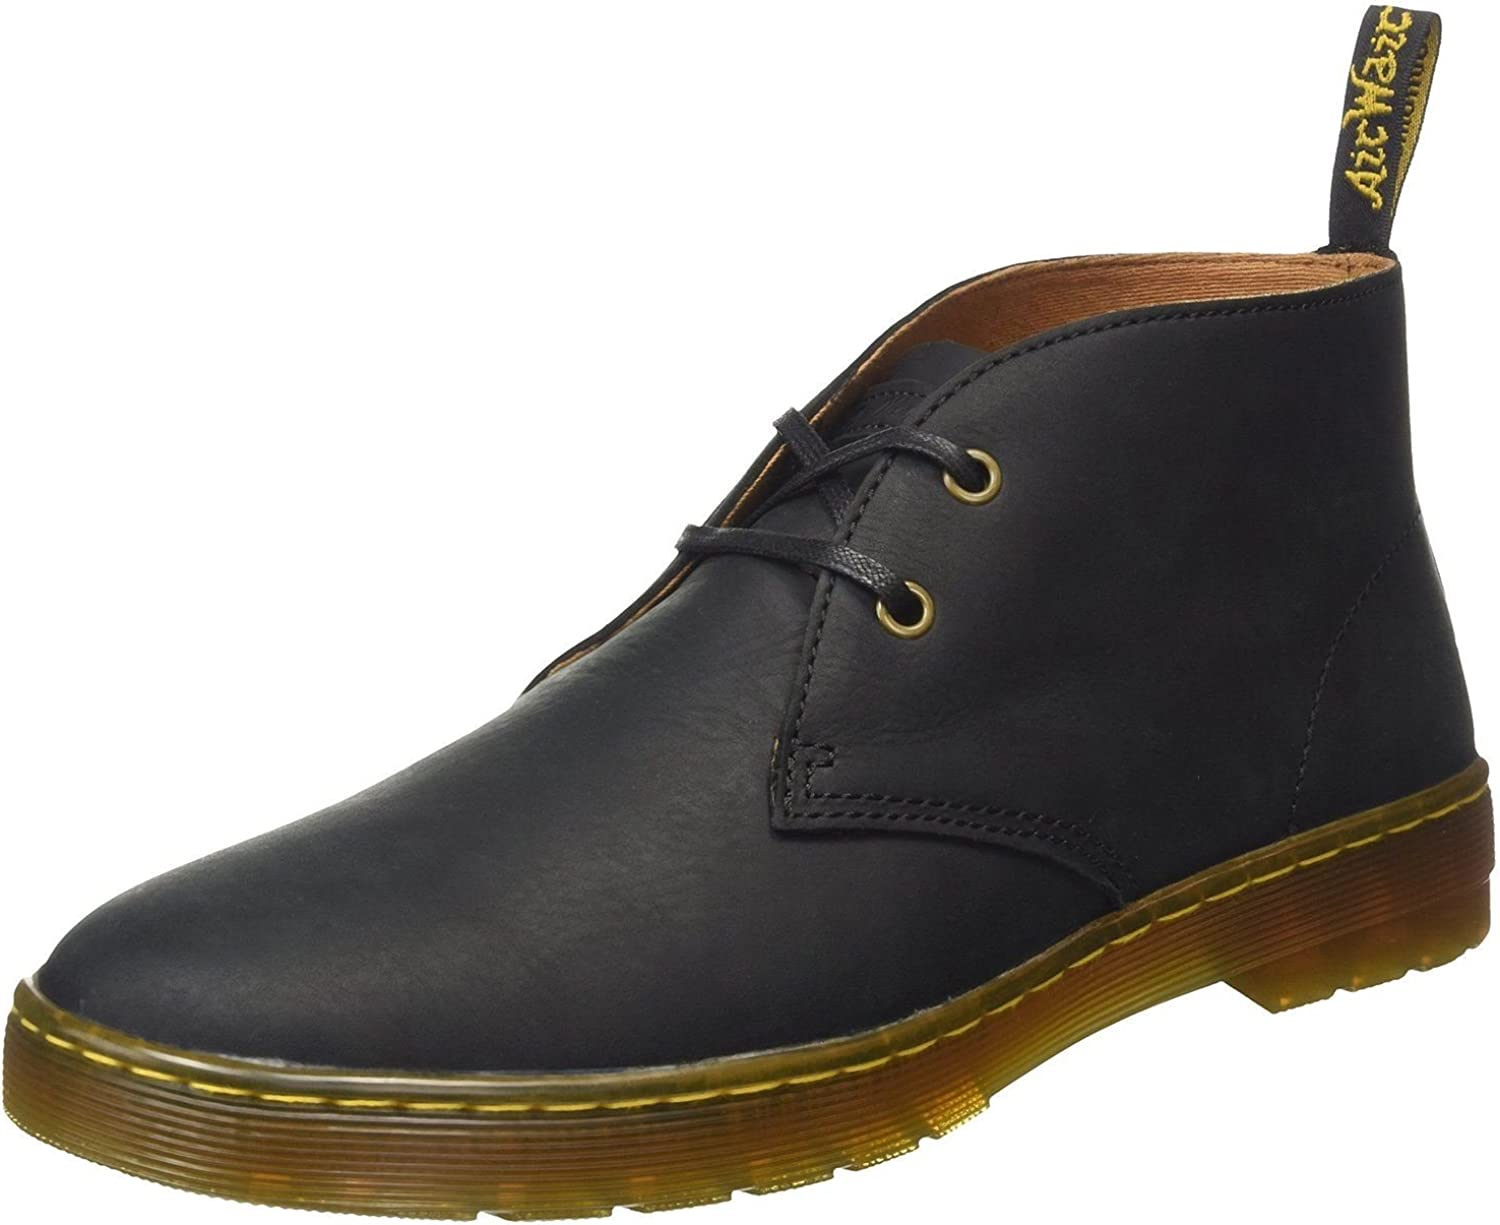 Dr. Martens Cabrillo Black Mens 2 Eyelet Leather Boots